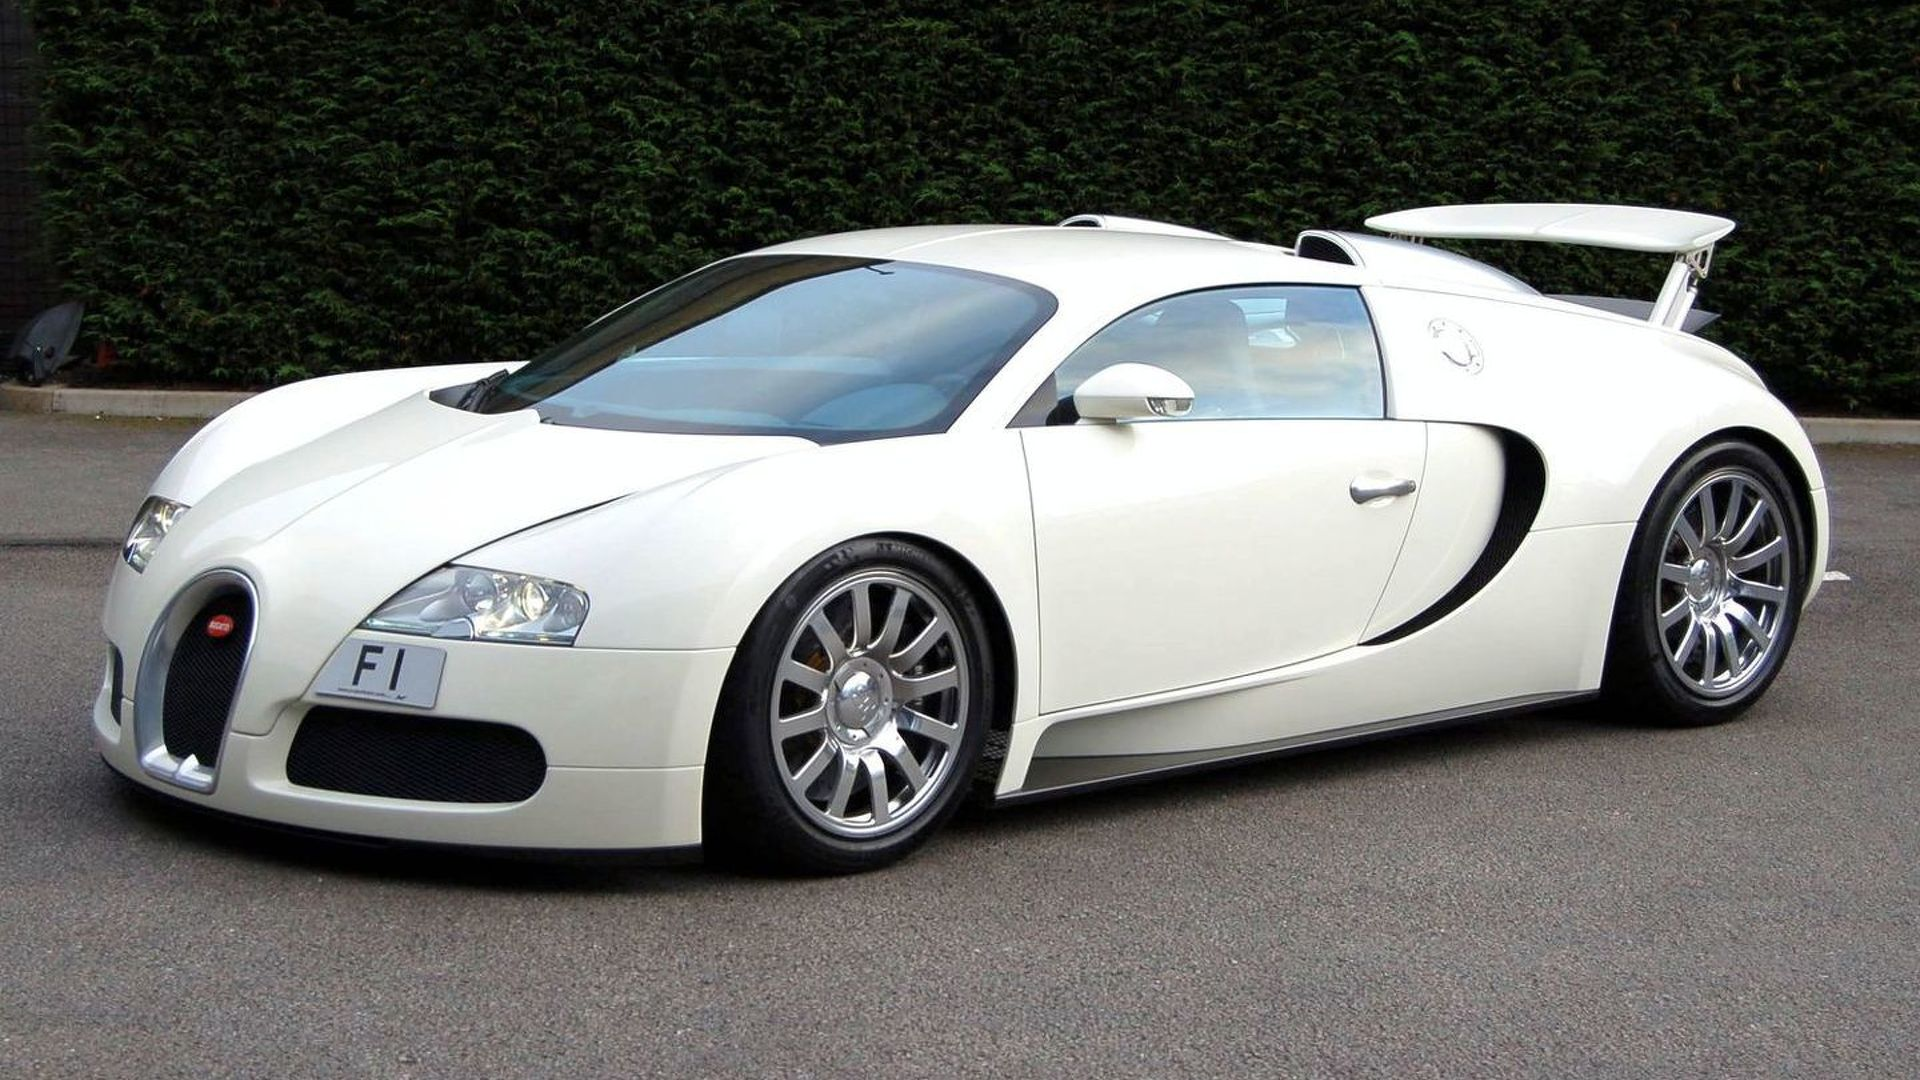 F1 tagged bugatti veyron set for mph show appearance product 2009 10 20 22 21 32